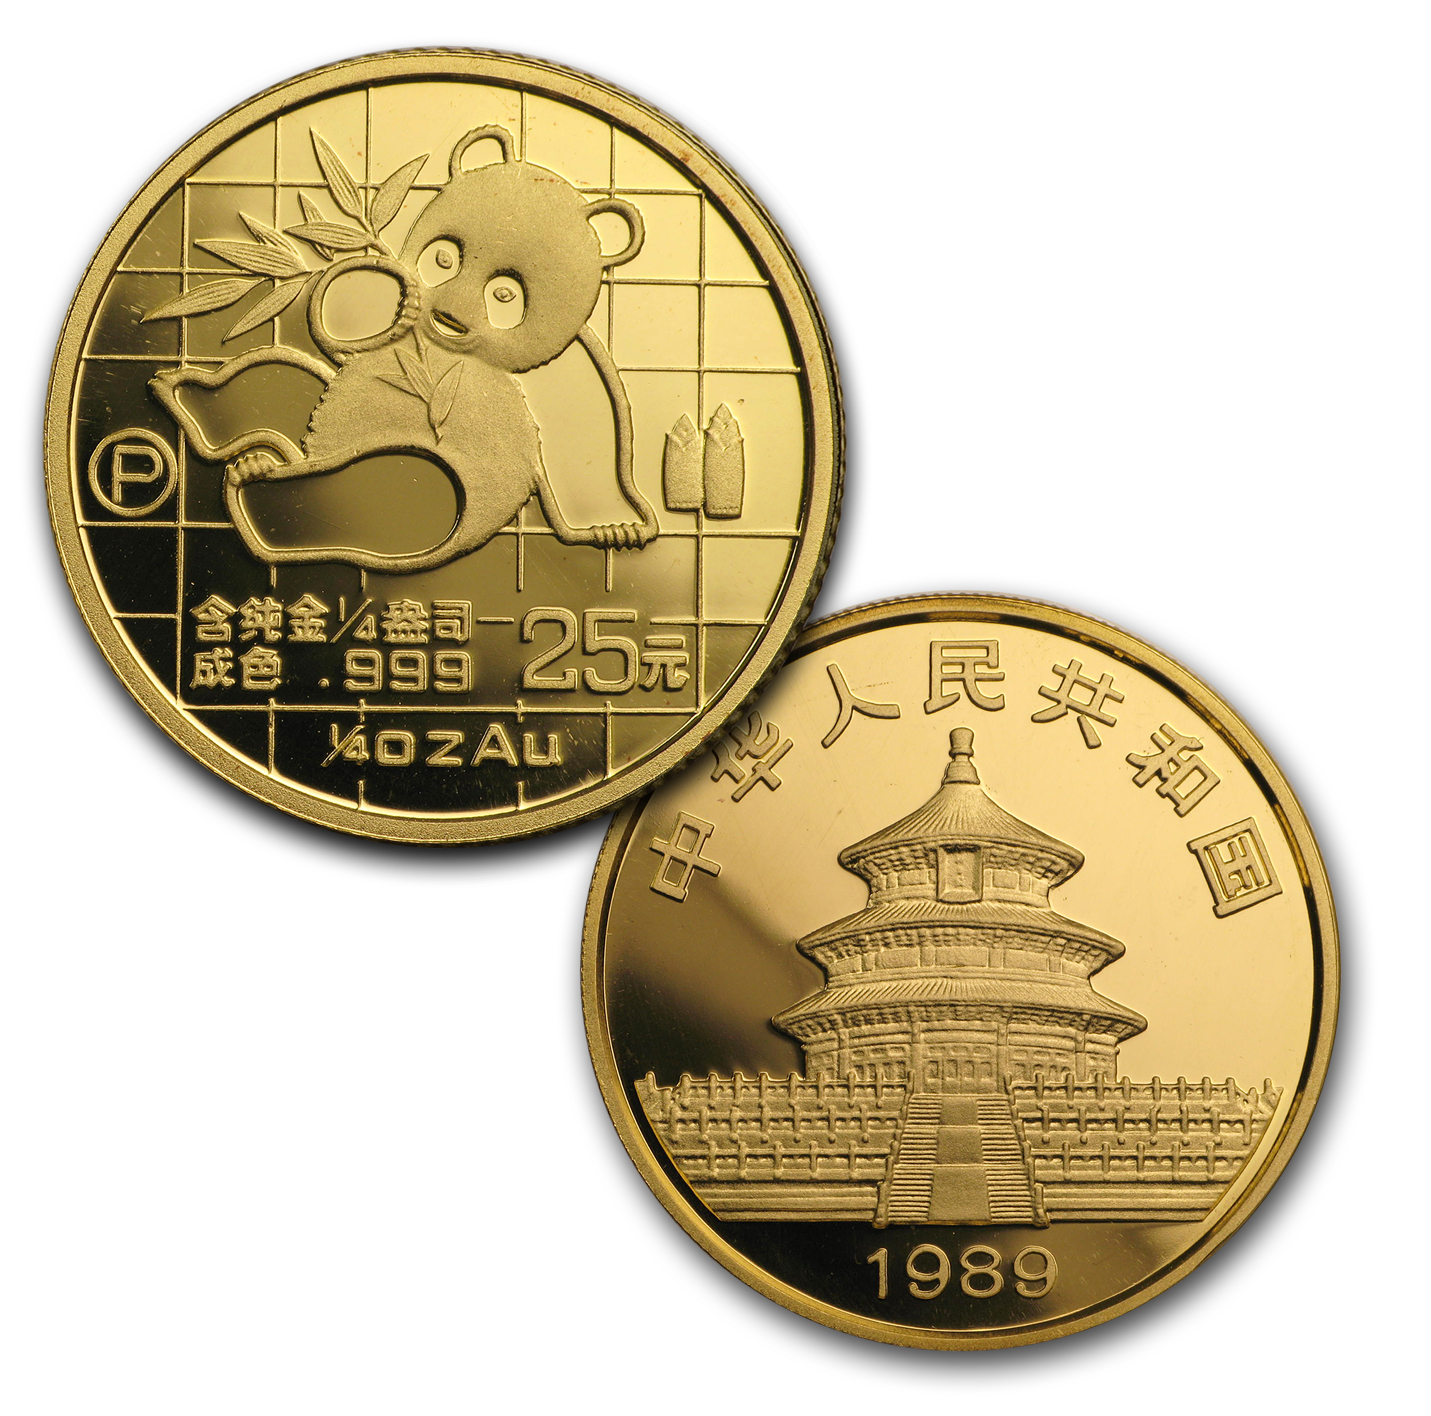 1989 (5 Coin) Gold Chinese Panda Proof Set (W/Box and Coa)